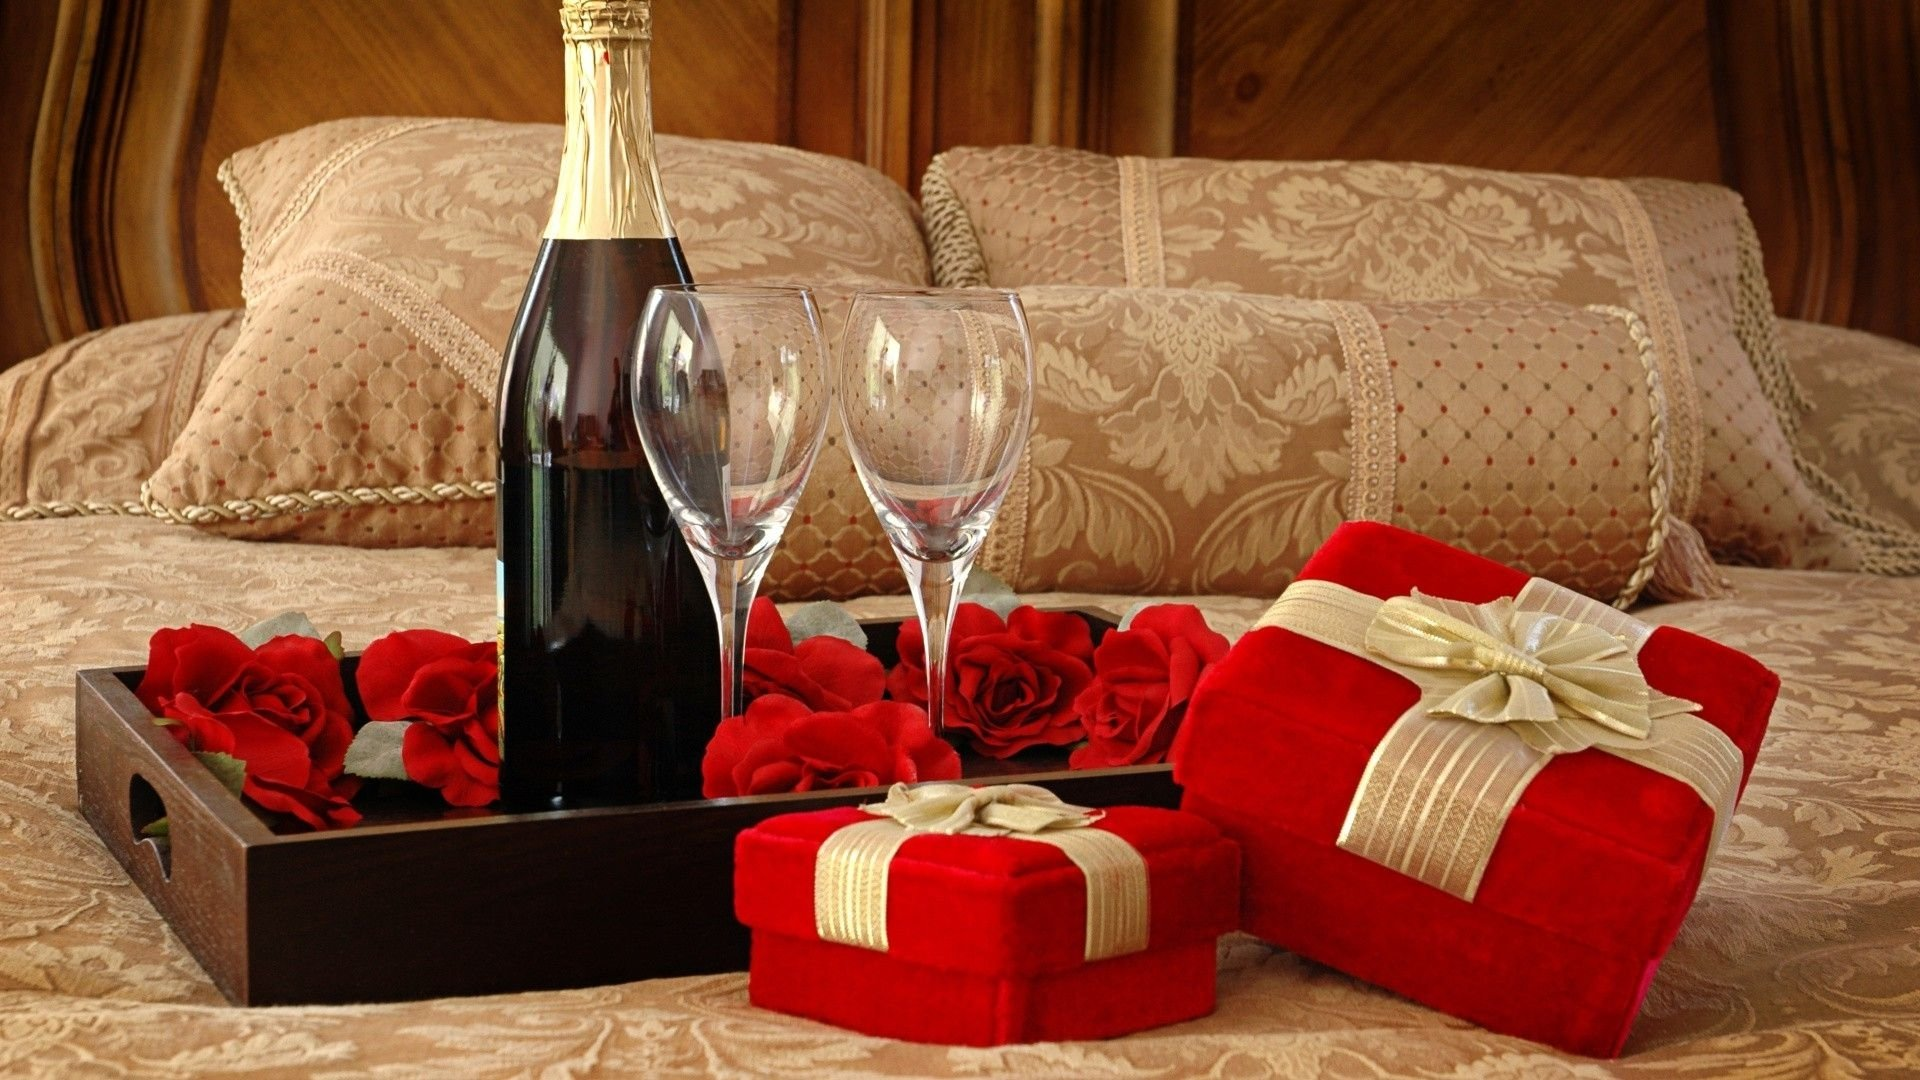 10 Attractive Romantic Birthday Gift Ideas For Him romantic and inexpensive gift ideas for the women in your life 9 2021